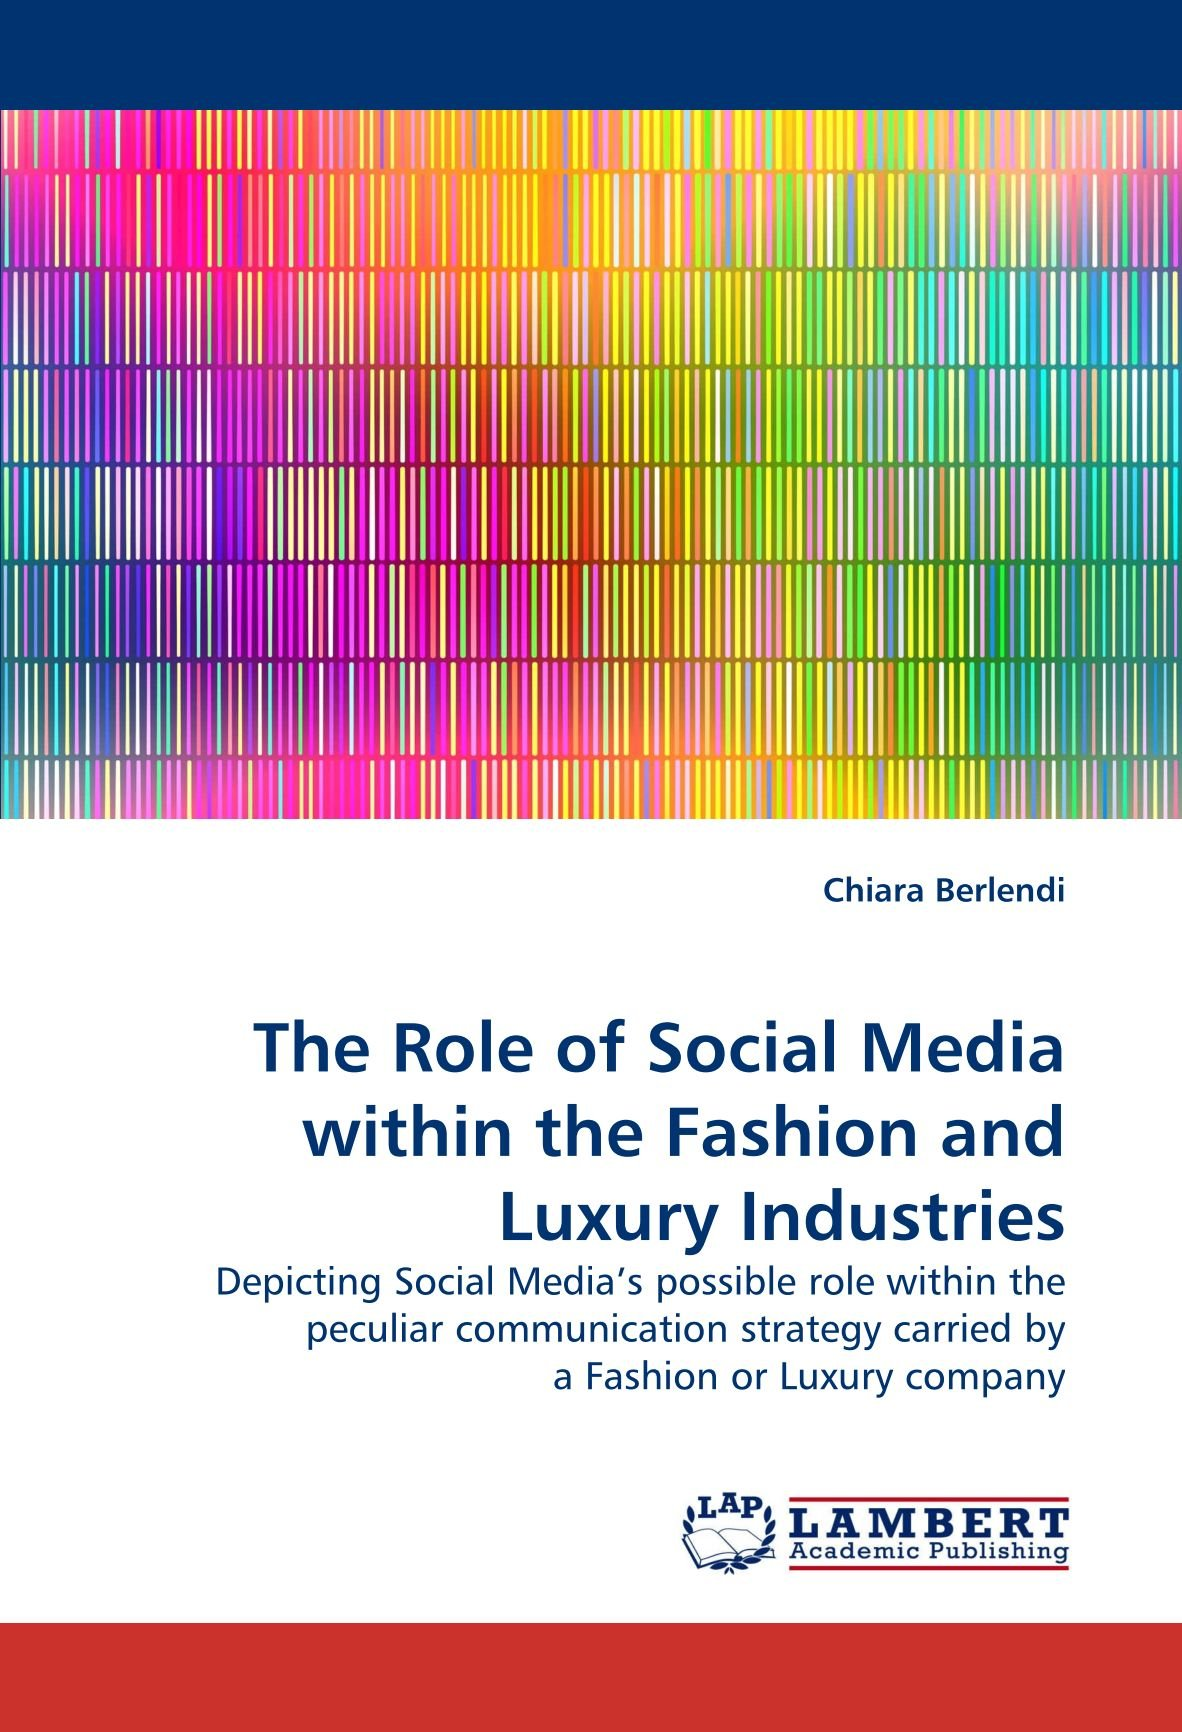 The Role of Social Media within the Fashion and Luxury